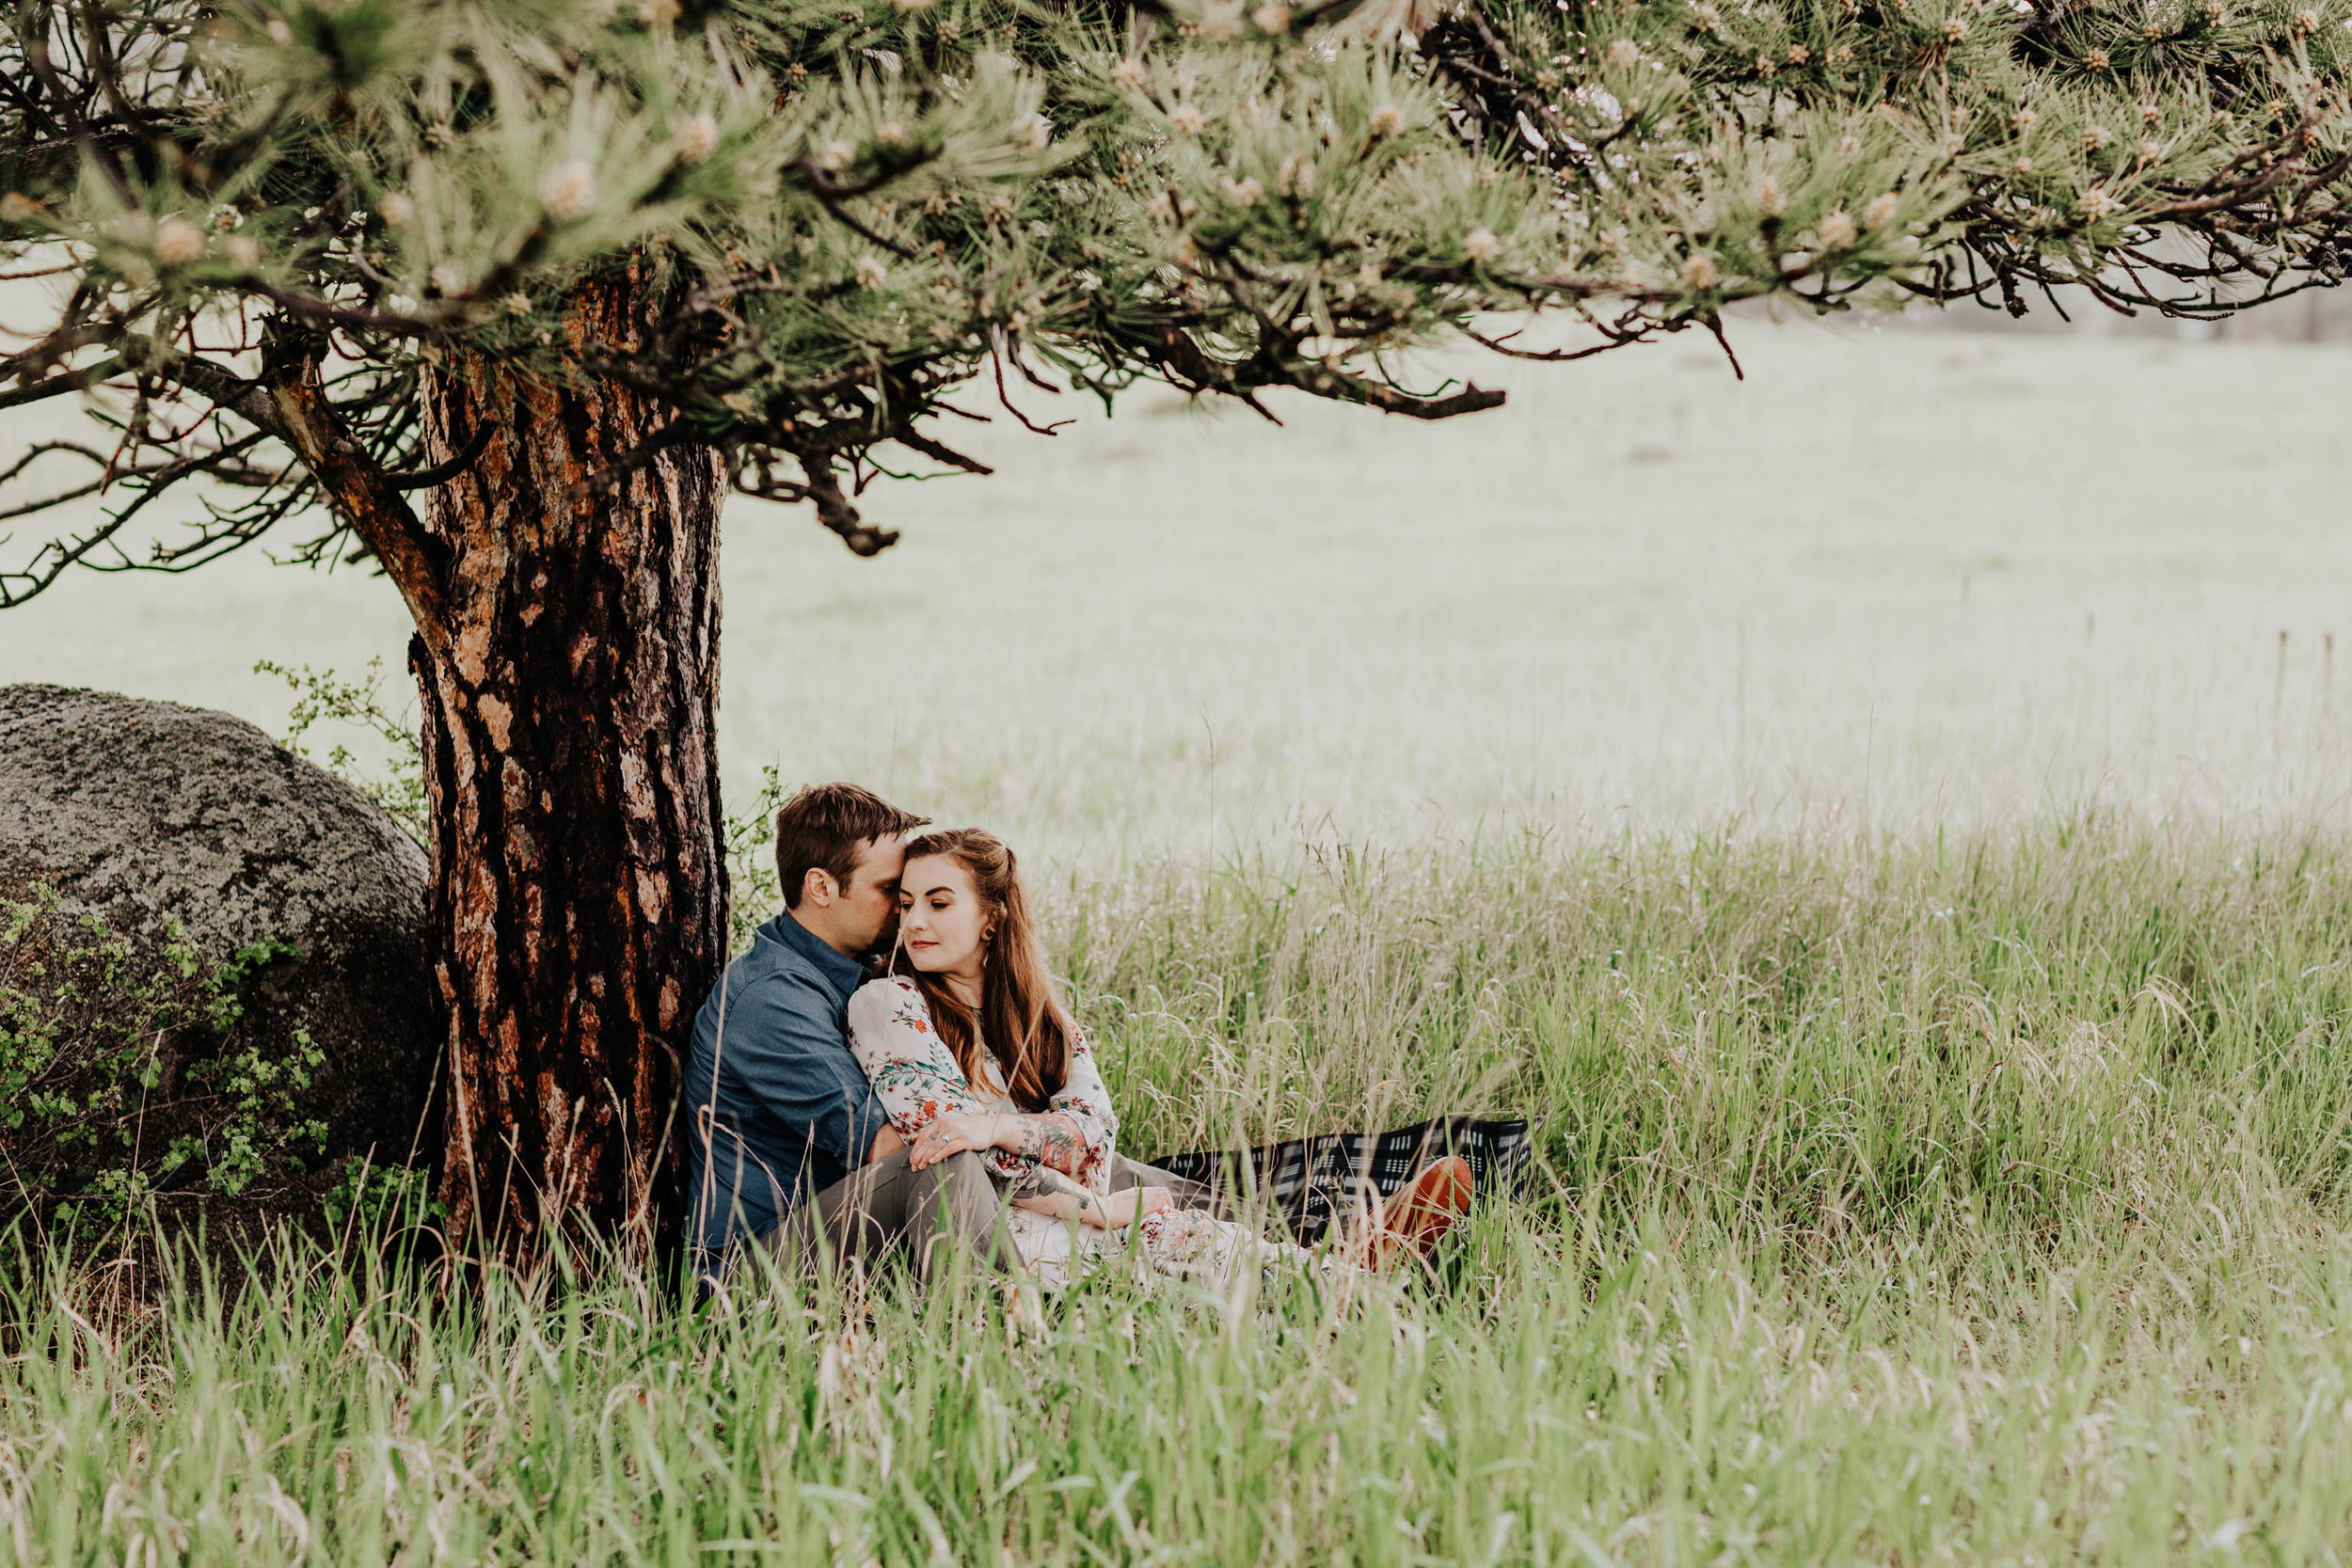 Sheena_Shahangian_Photography_Engagement_Photo_Shoot_Shelby_and_Andrew_Boulder_Colorado-80.jpg